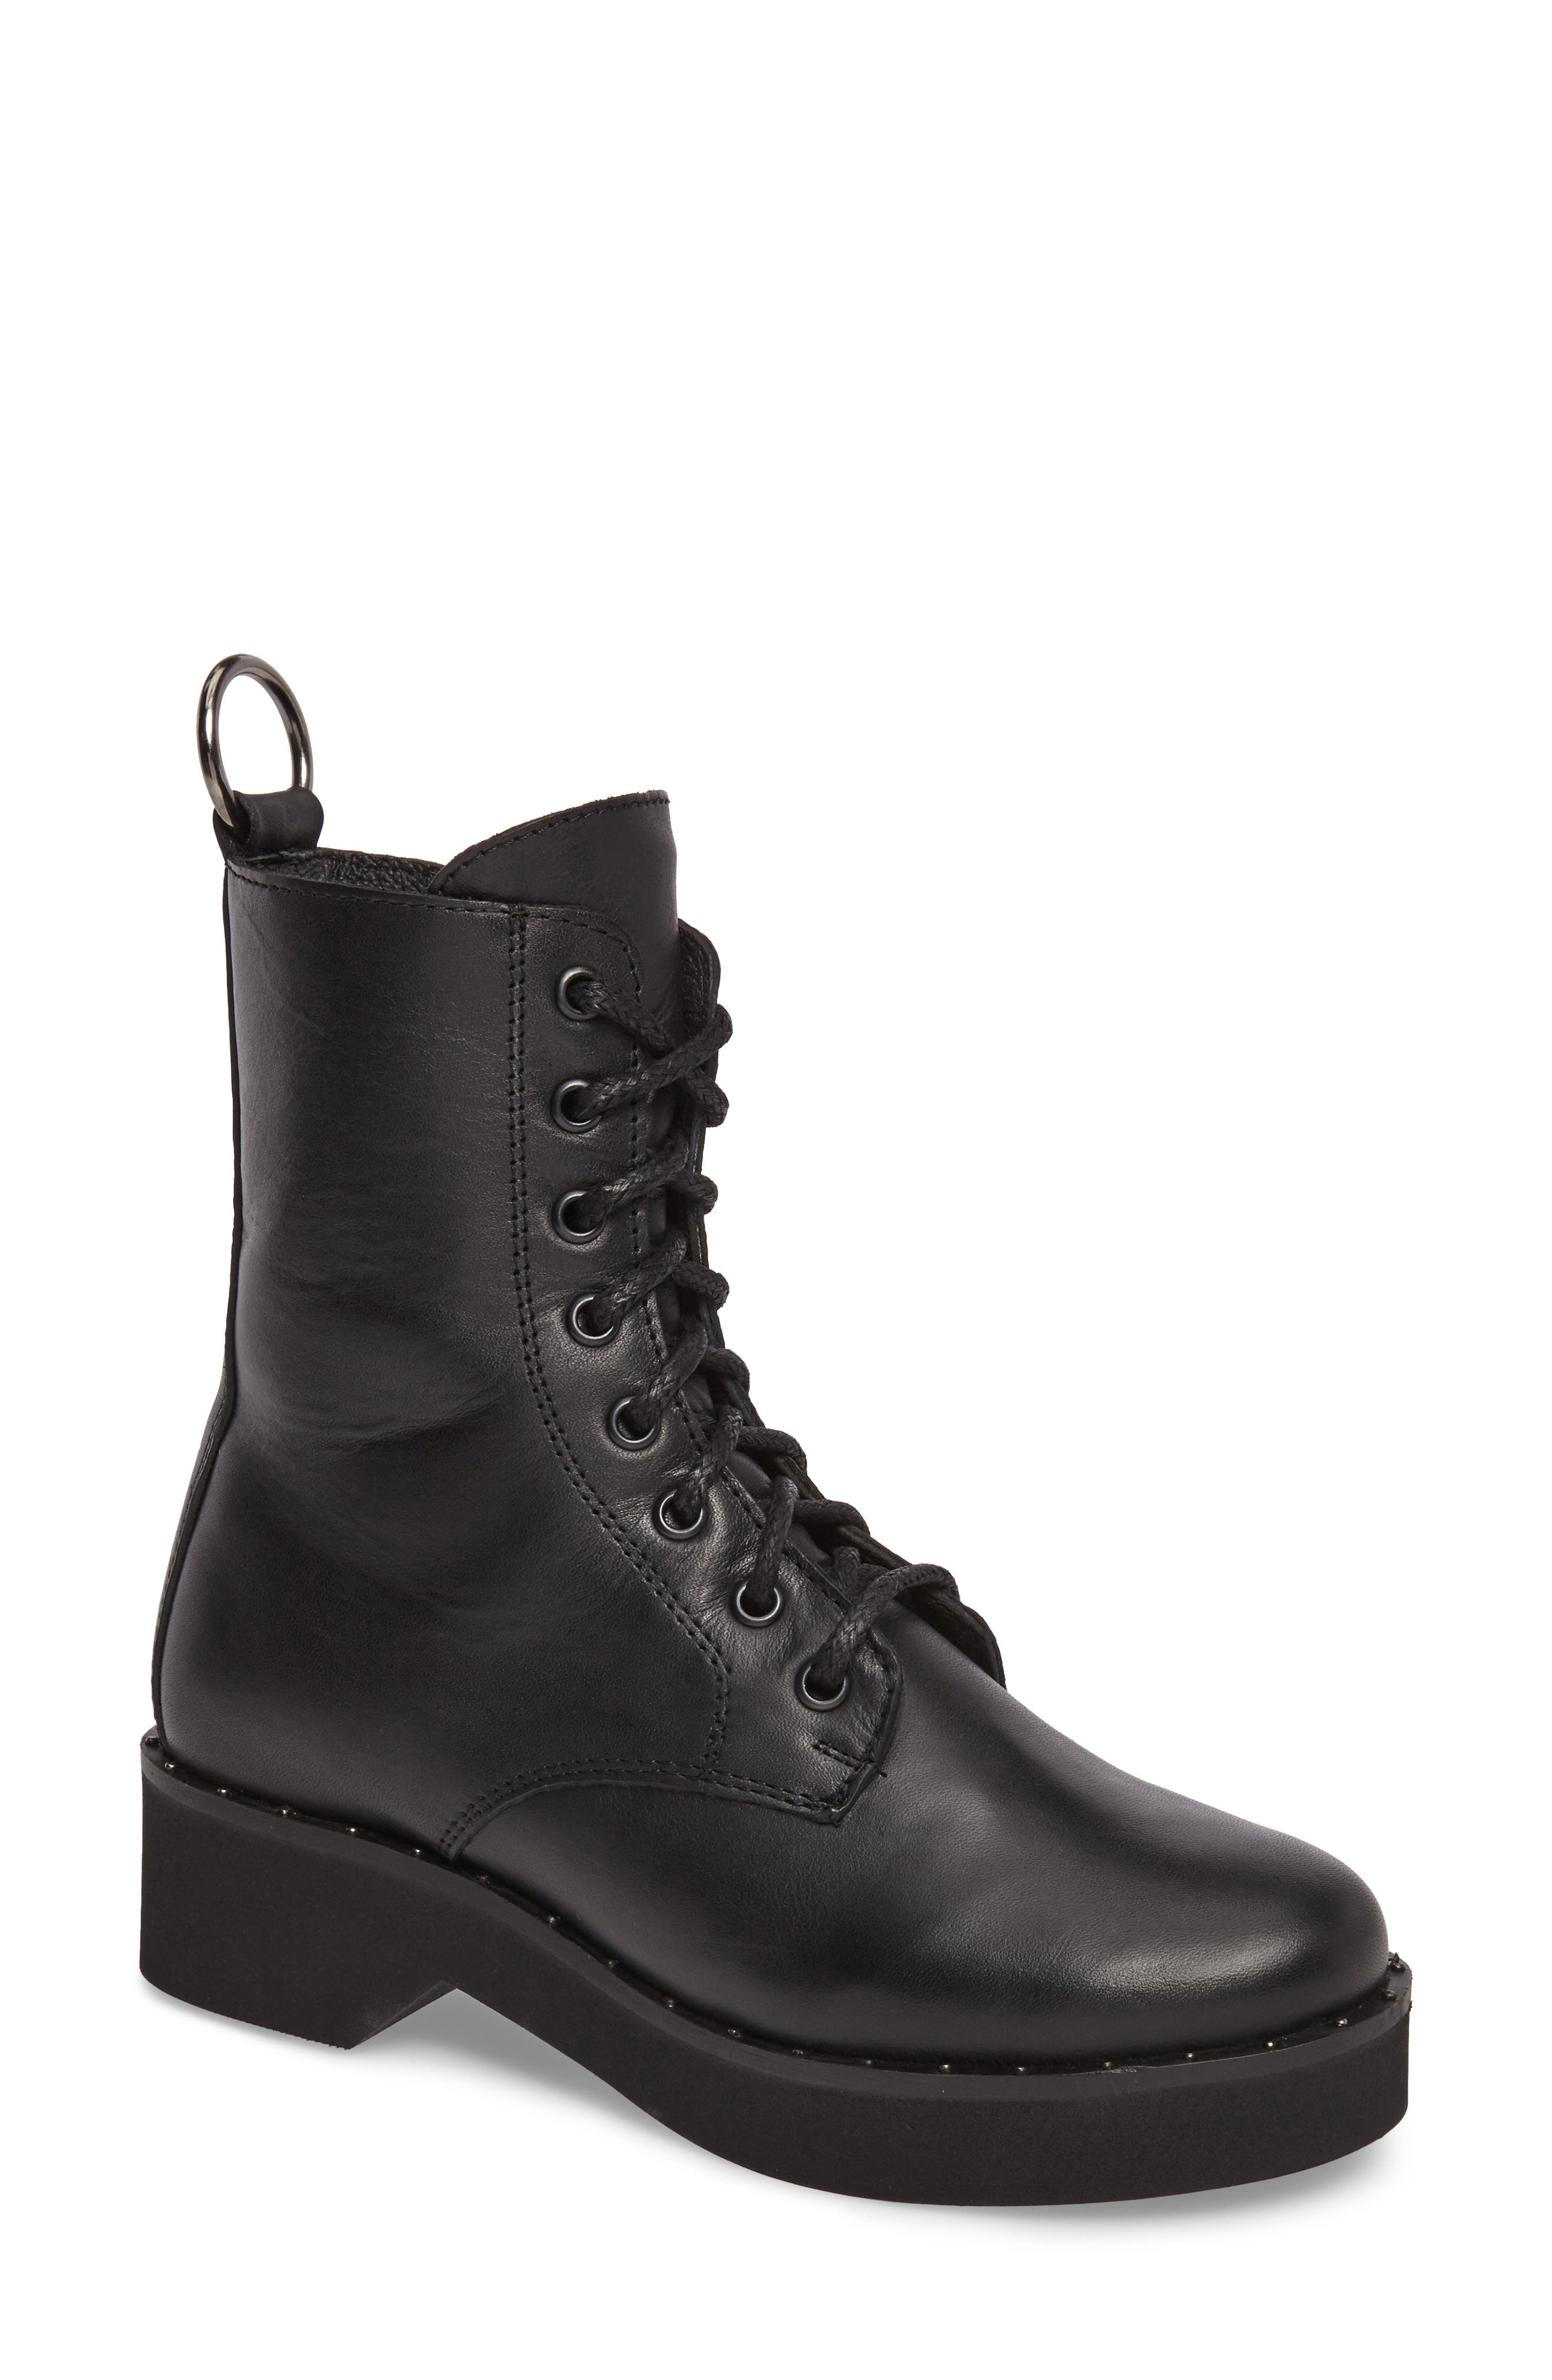 Rocco Combat Boot,                             Main thumbnail 1, color,                             001